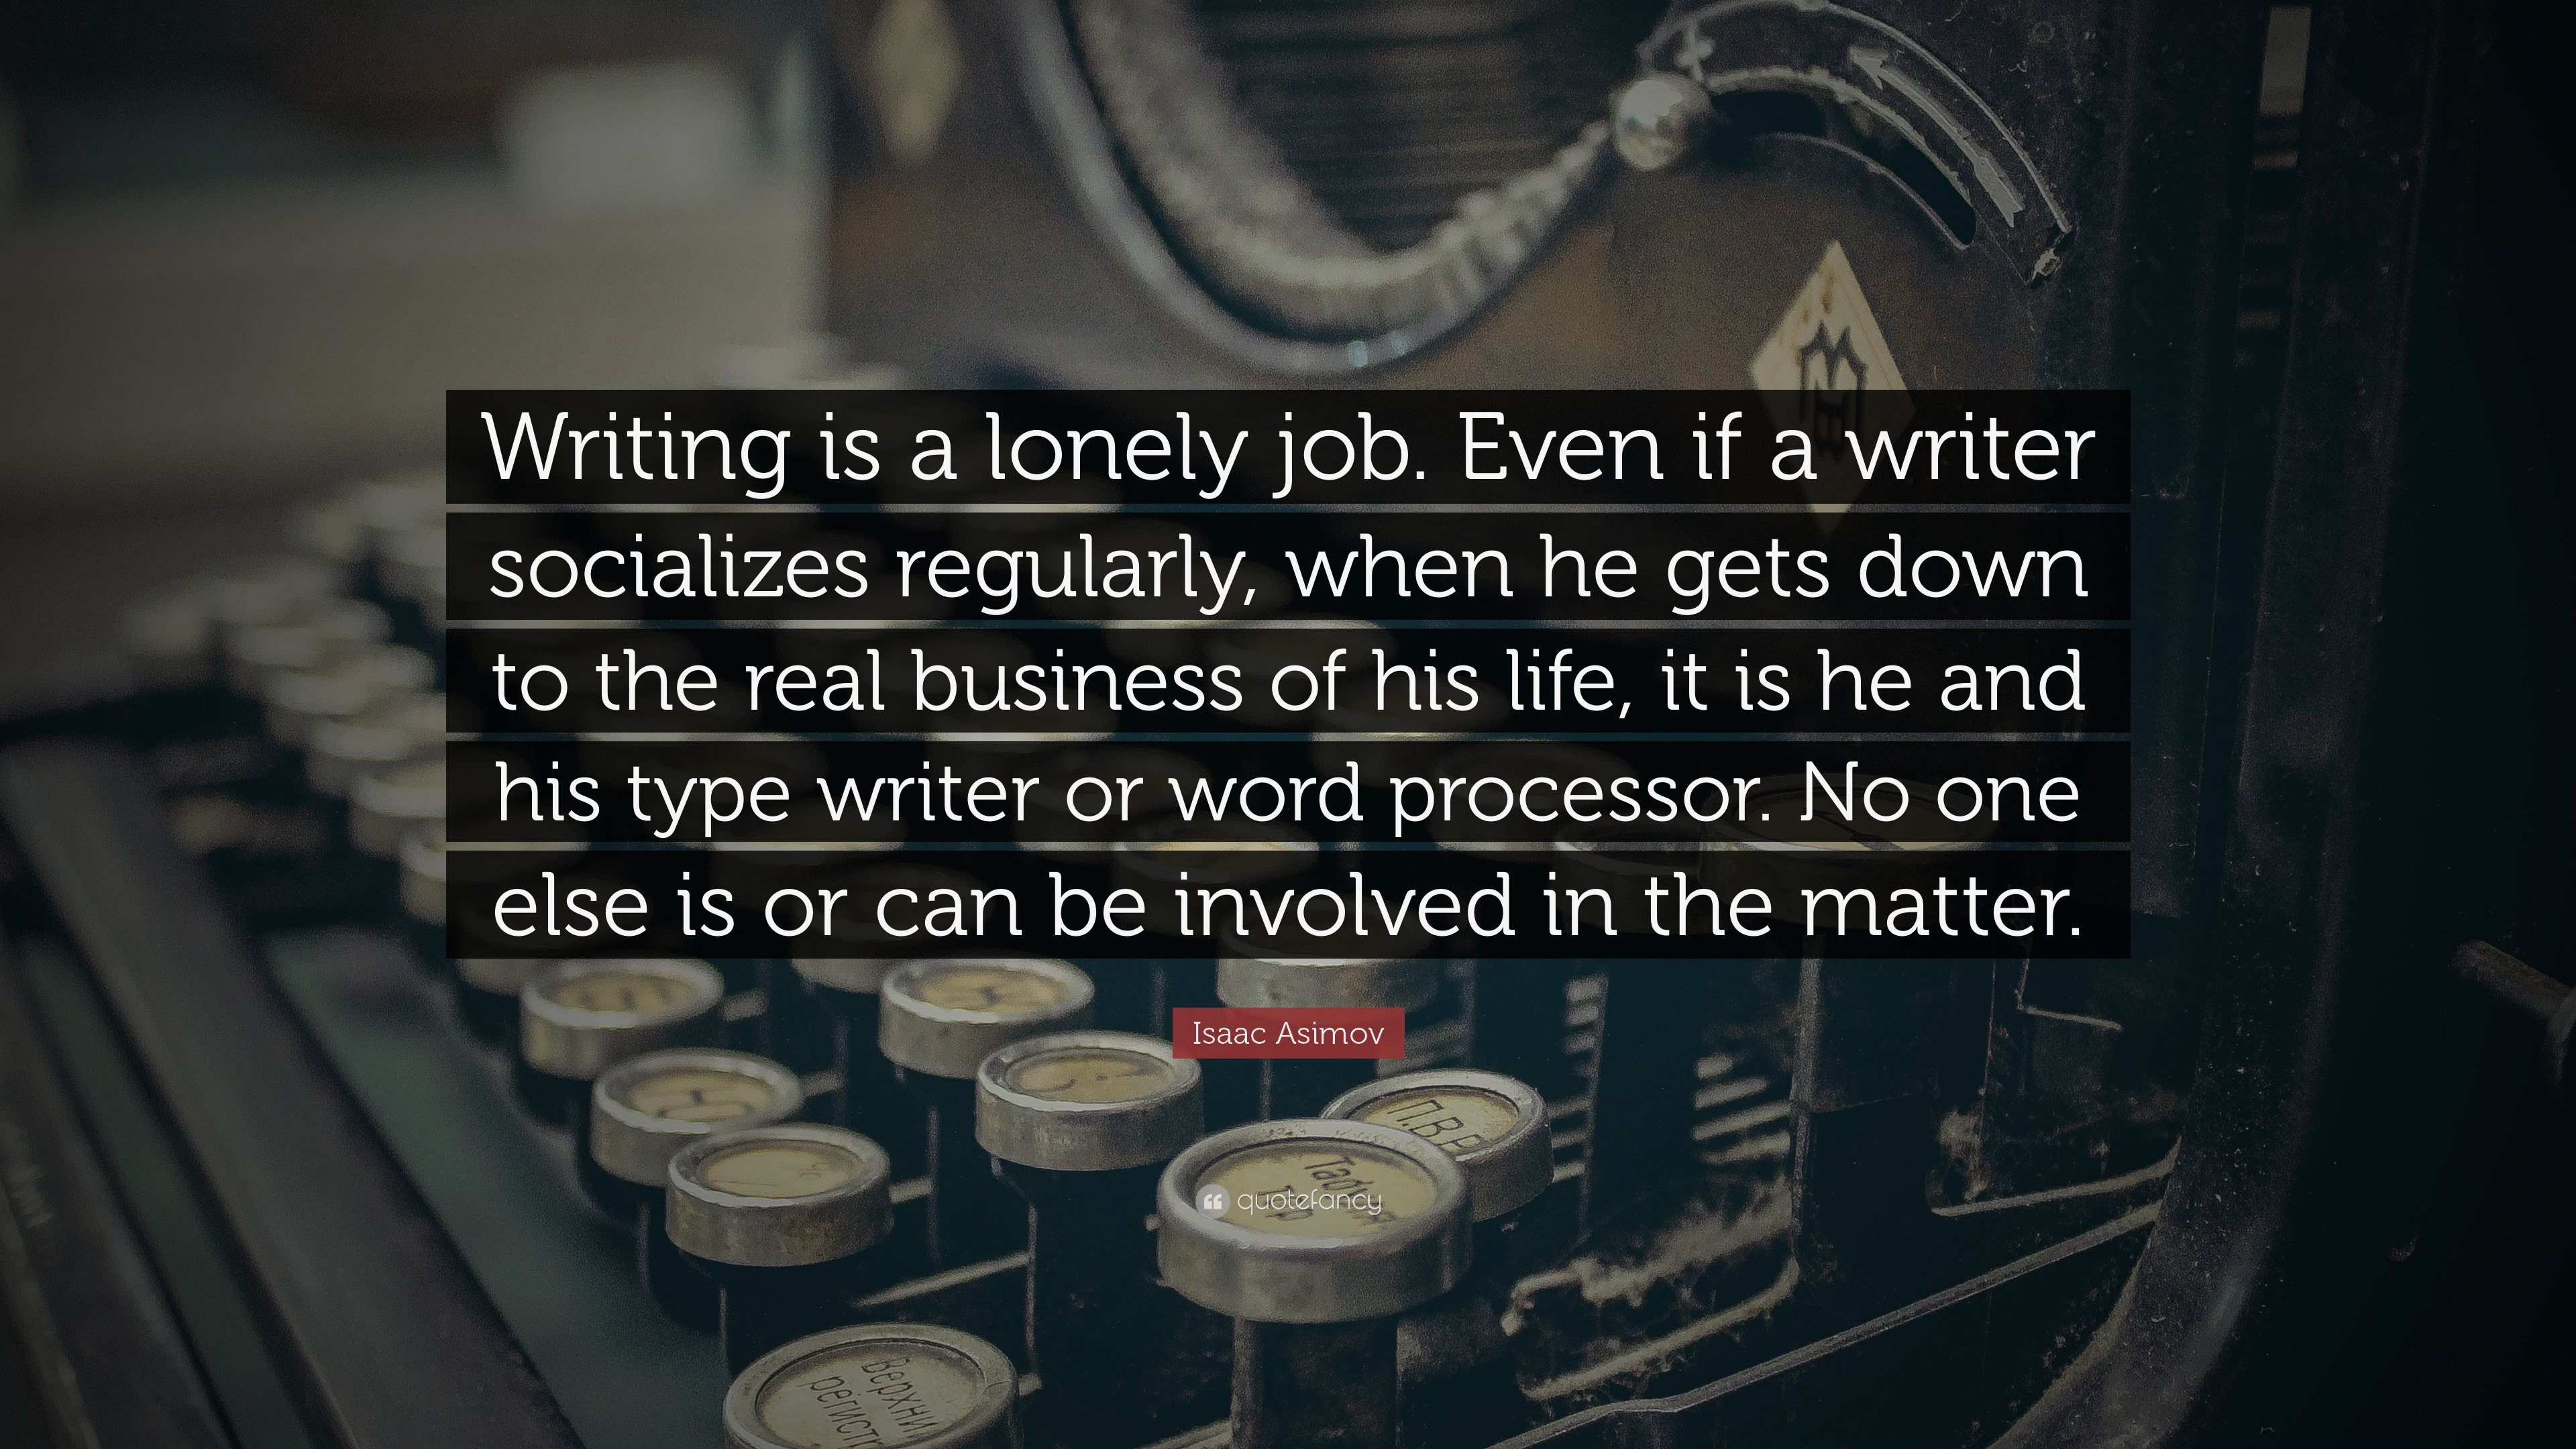 writing a quote for a job